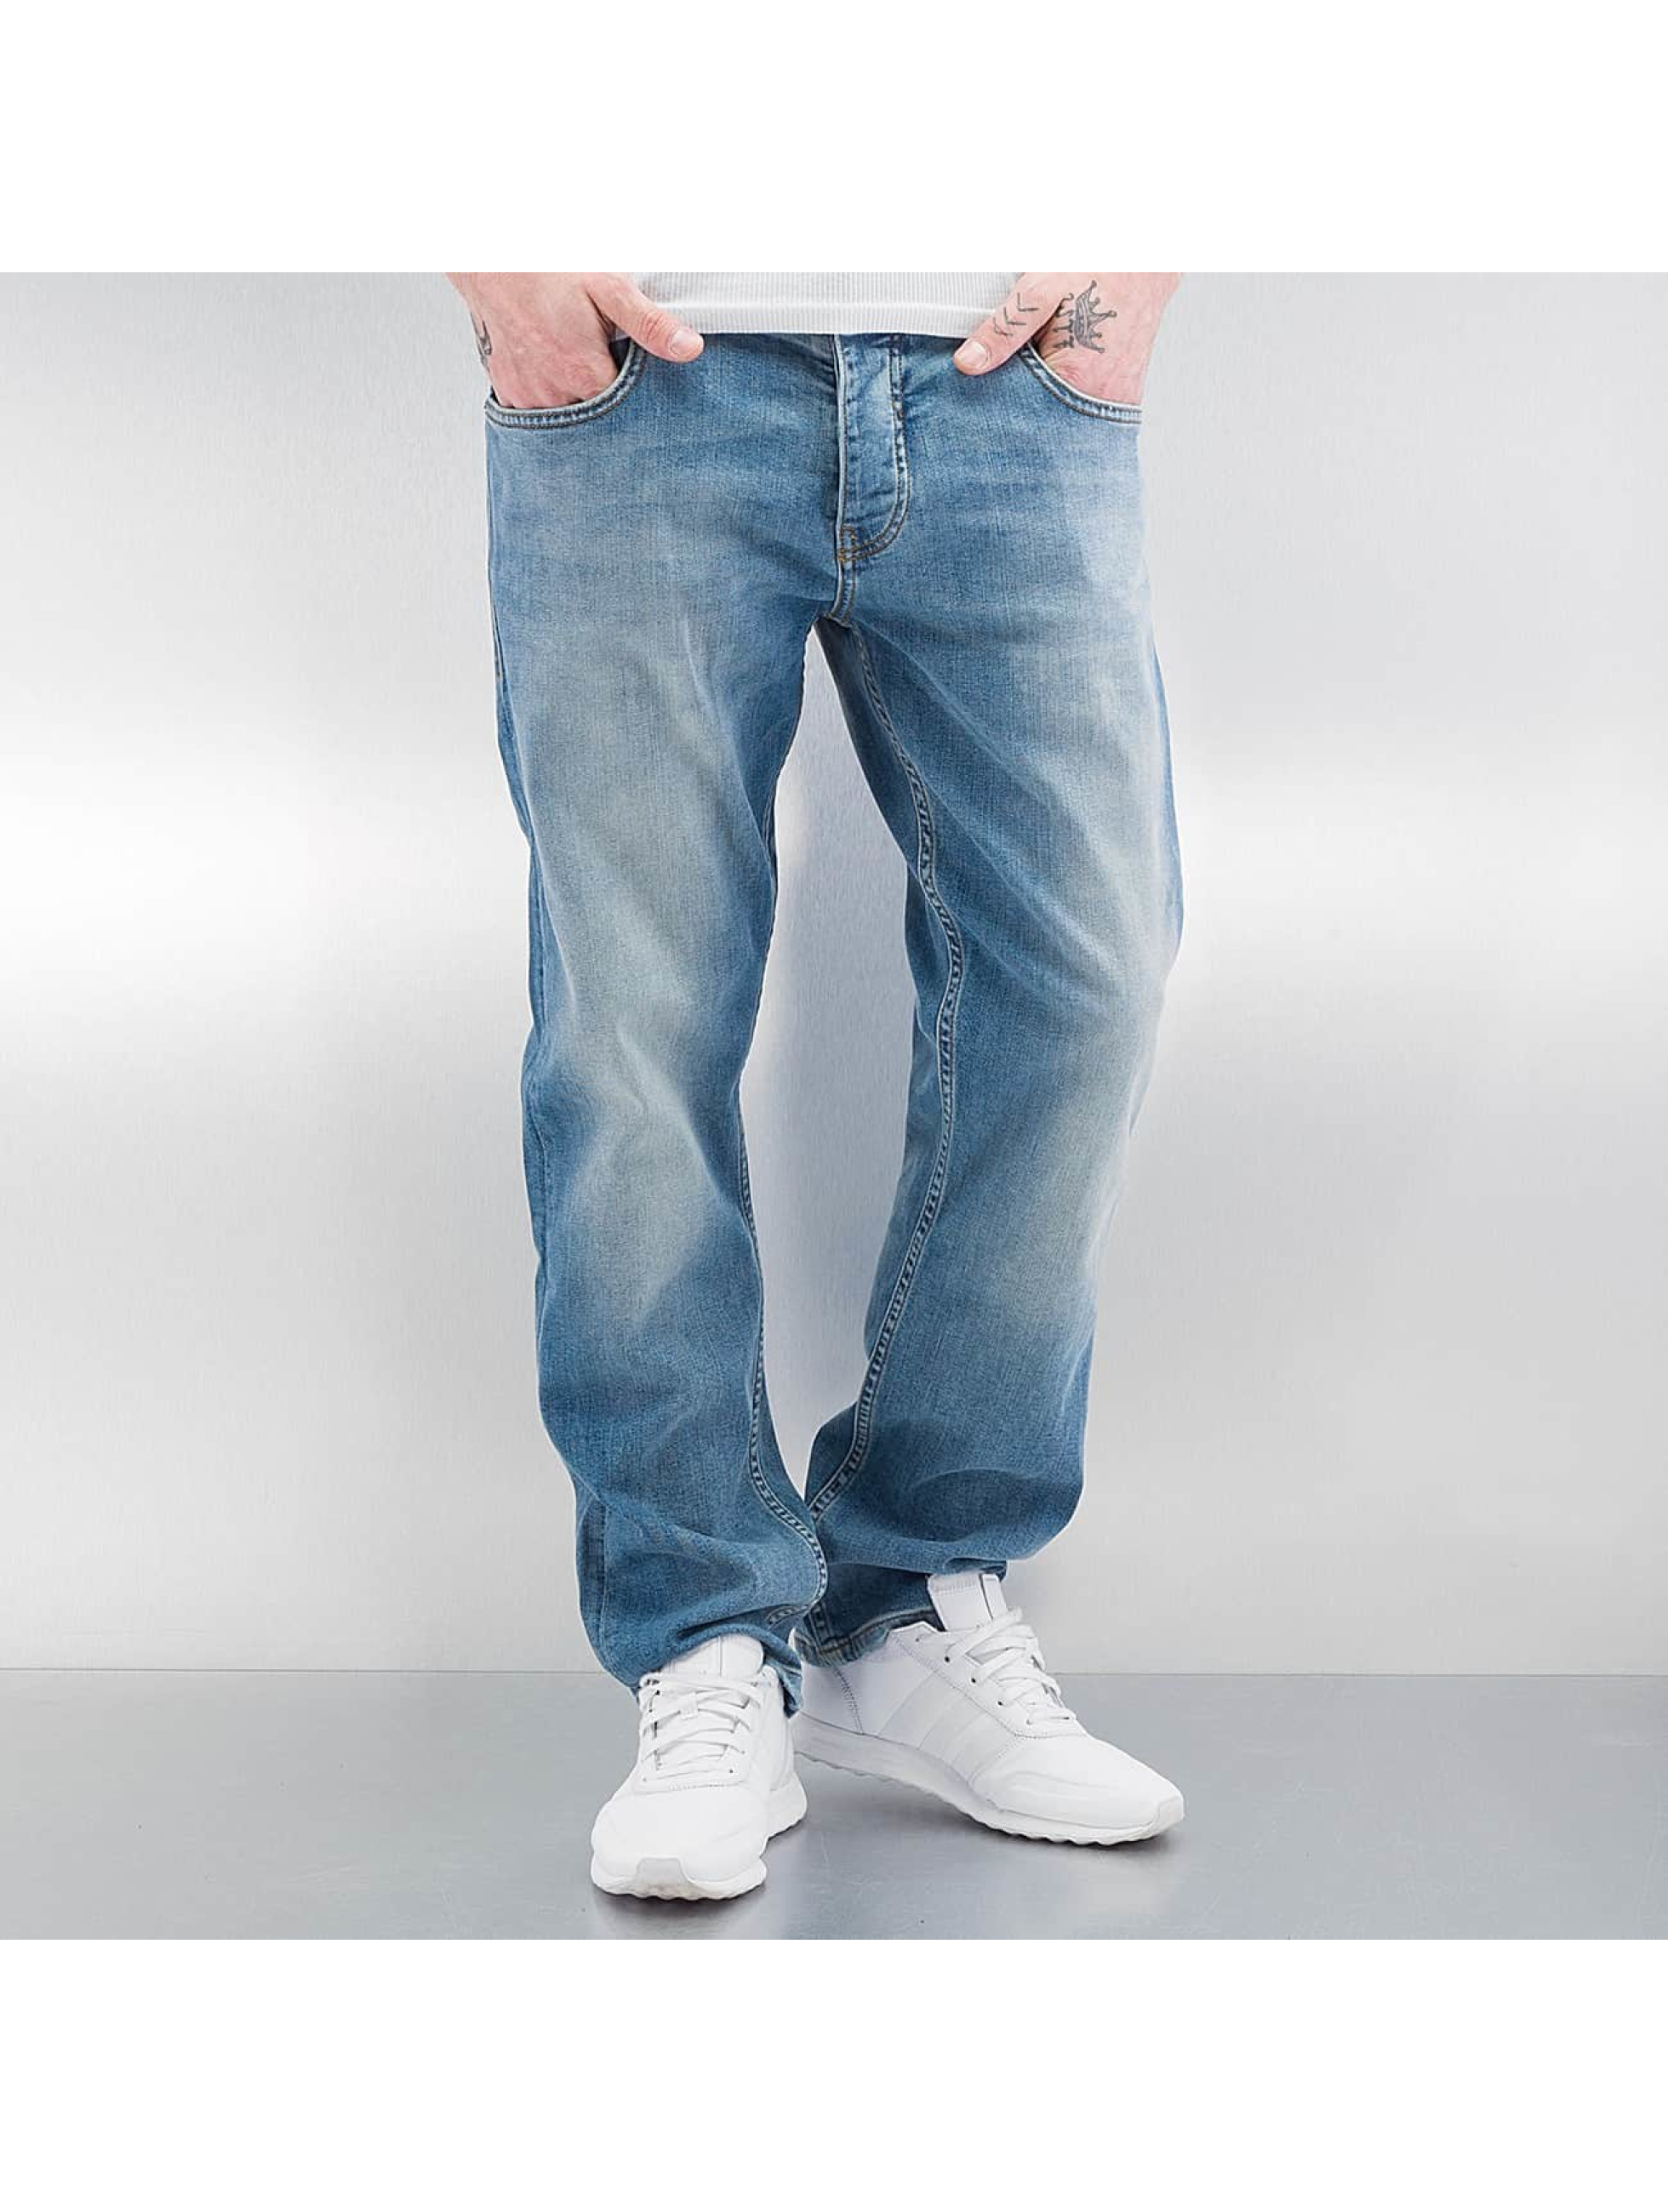 Ecko Unltd. / Straight Fit Jeans Soo in blue W 32 L 32